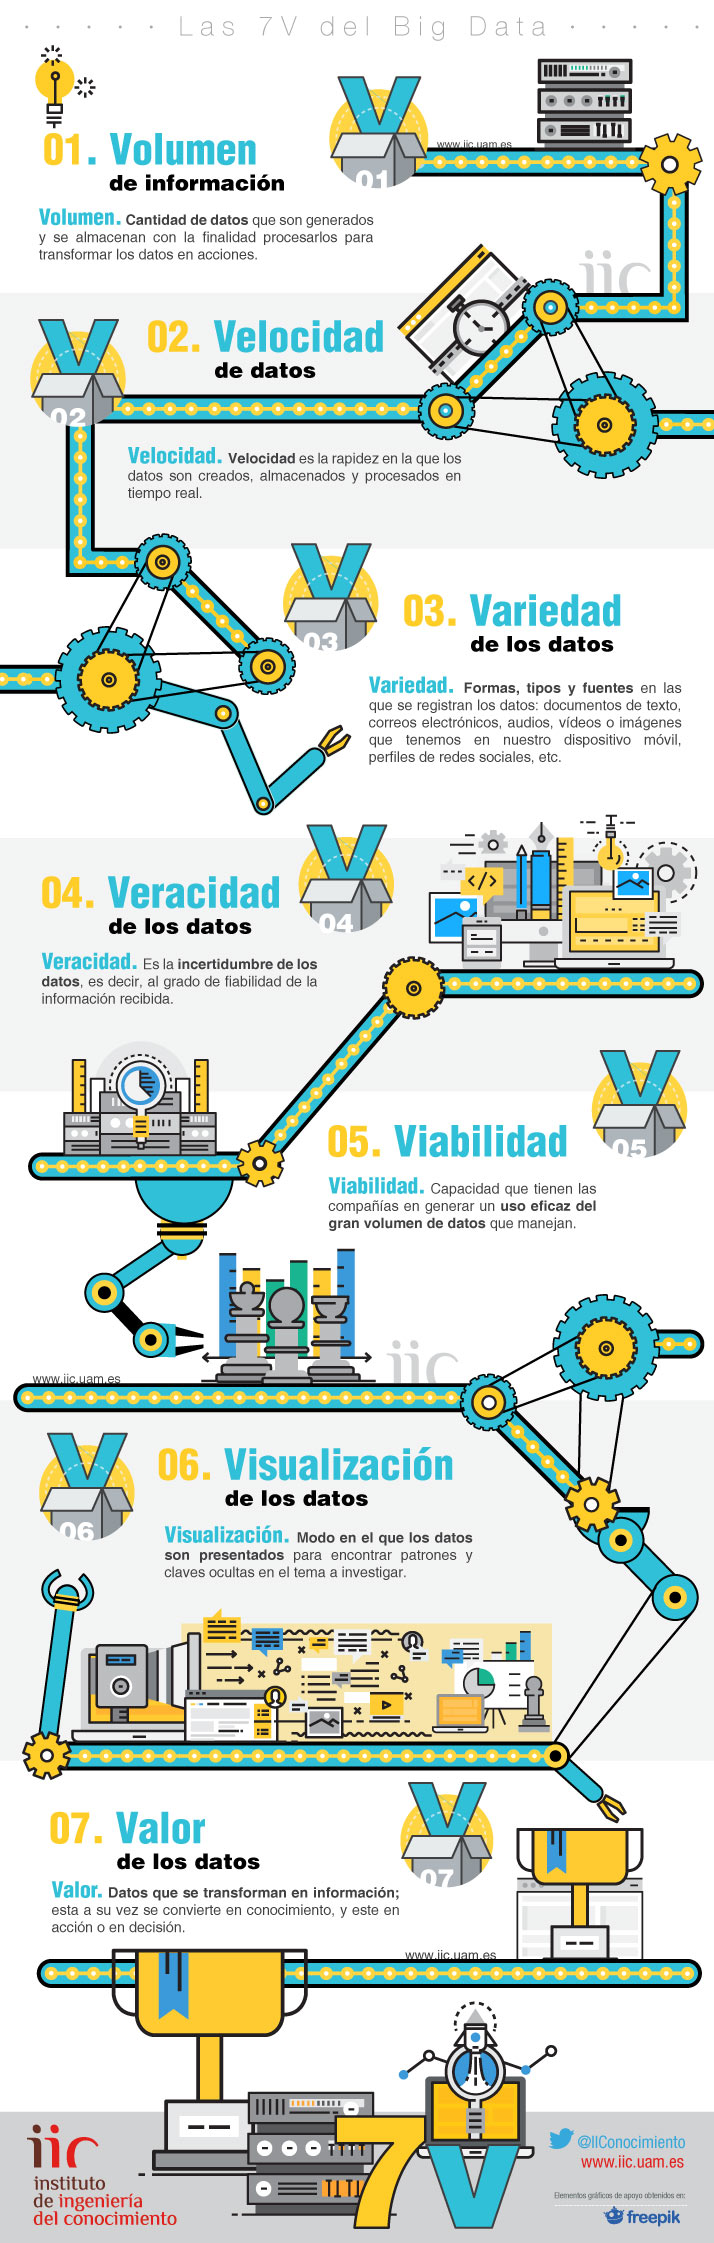 7-v-big-data-infografia